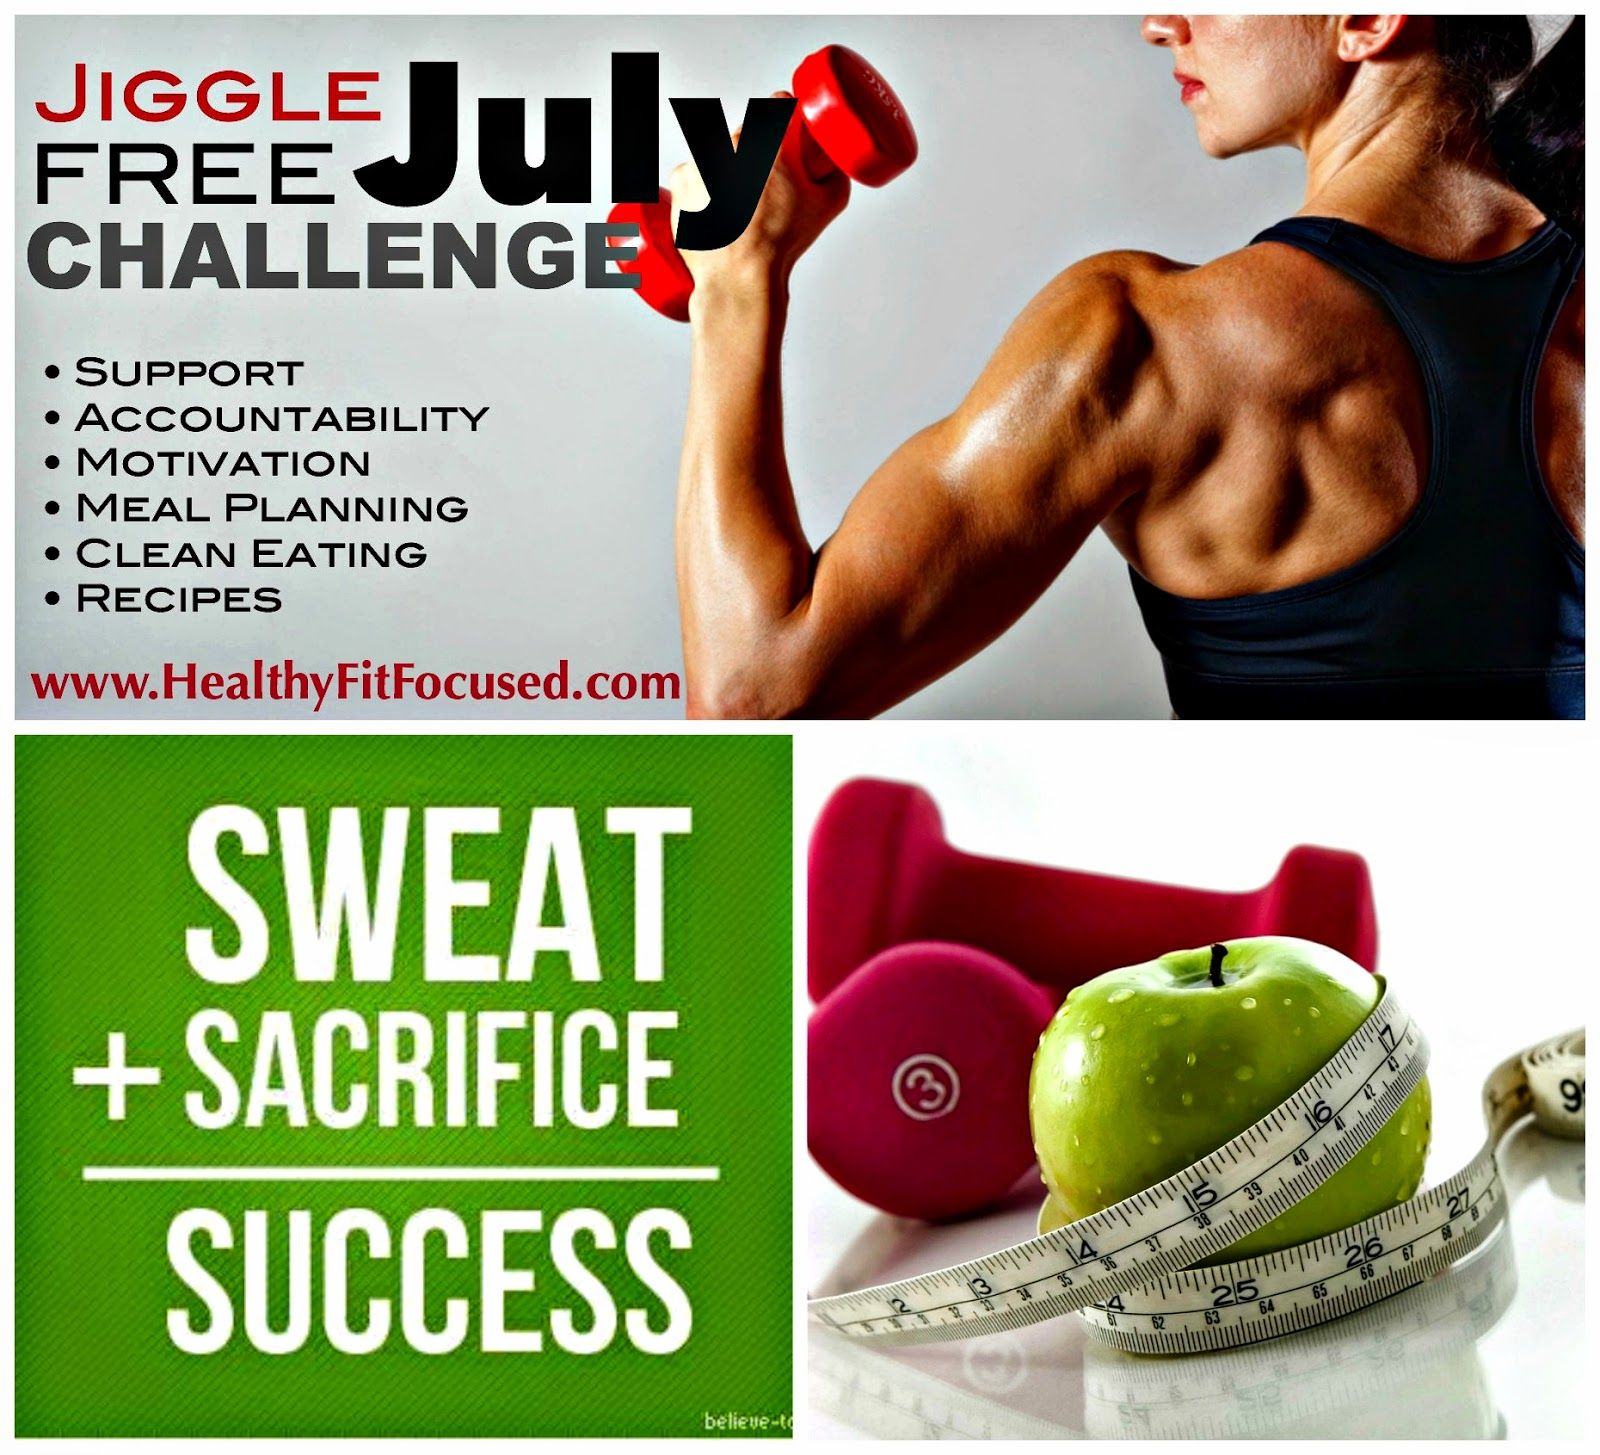 PiYo Week 1 Update - Women's Progress and PiYo Meal Plan, Plan A. www.HealthyFitFocused.com, Jiggle Free July Challenge